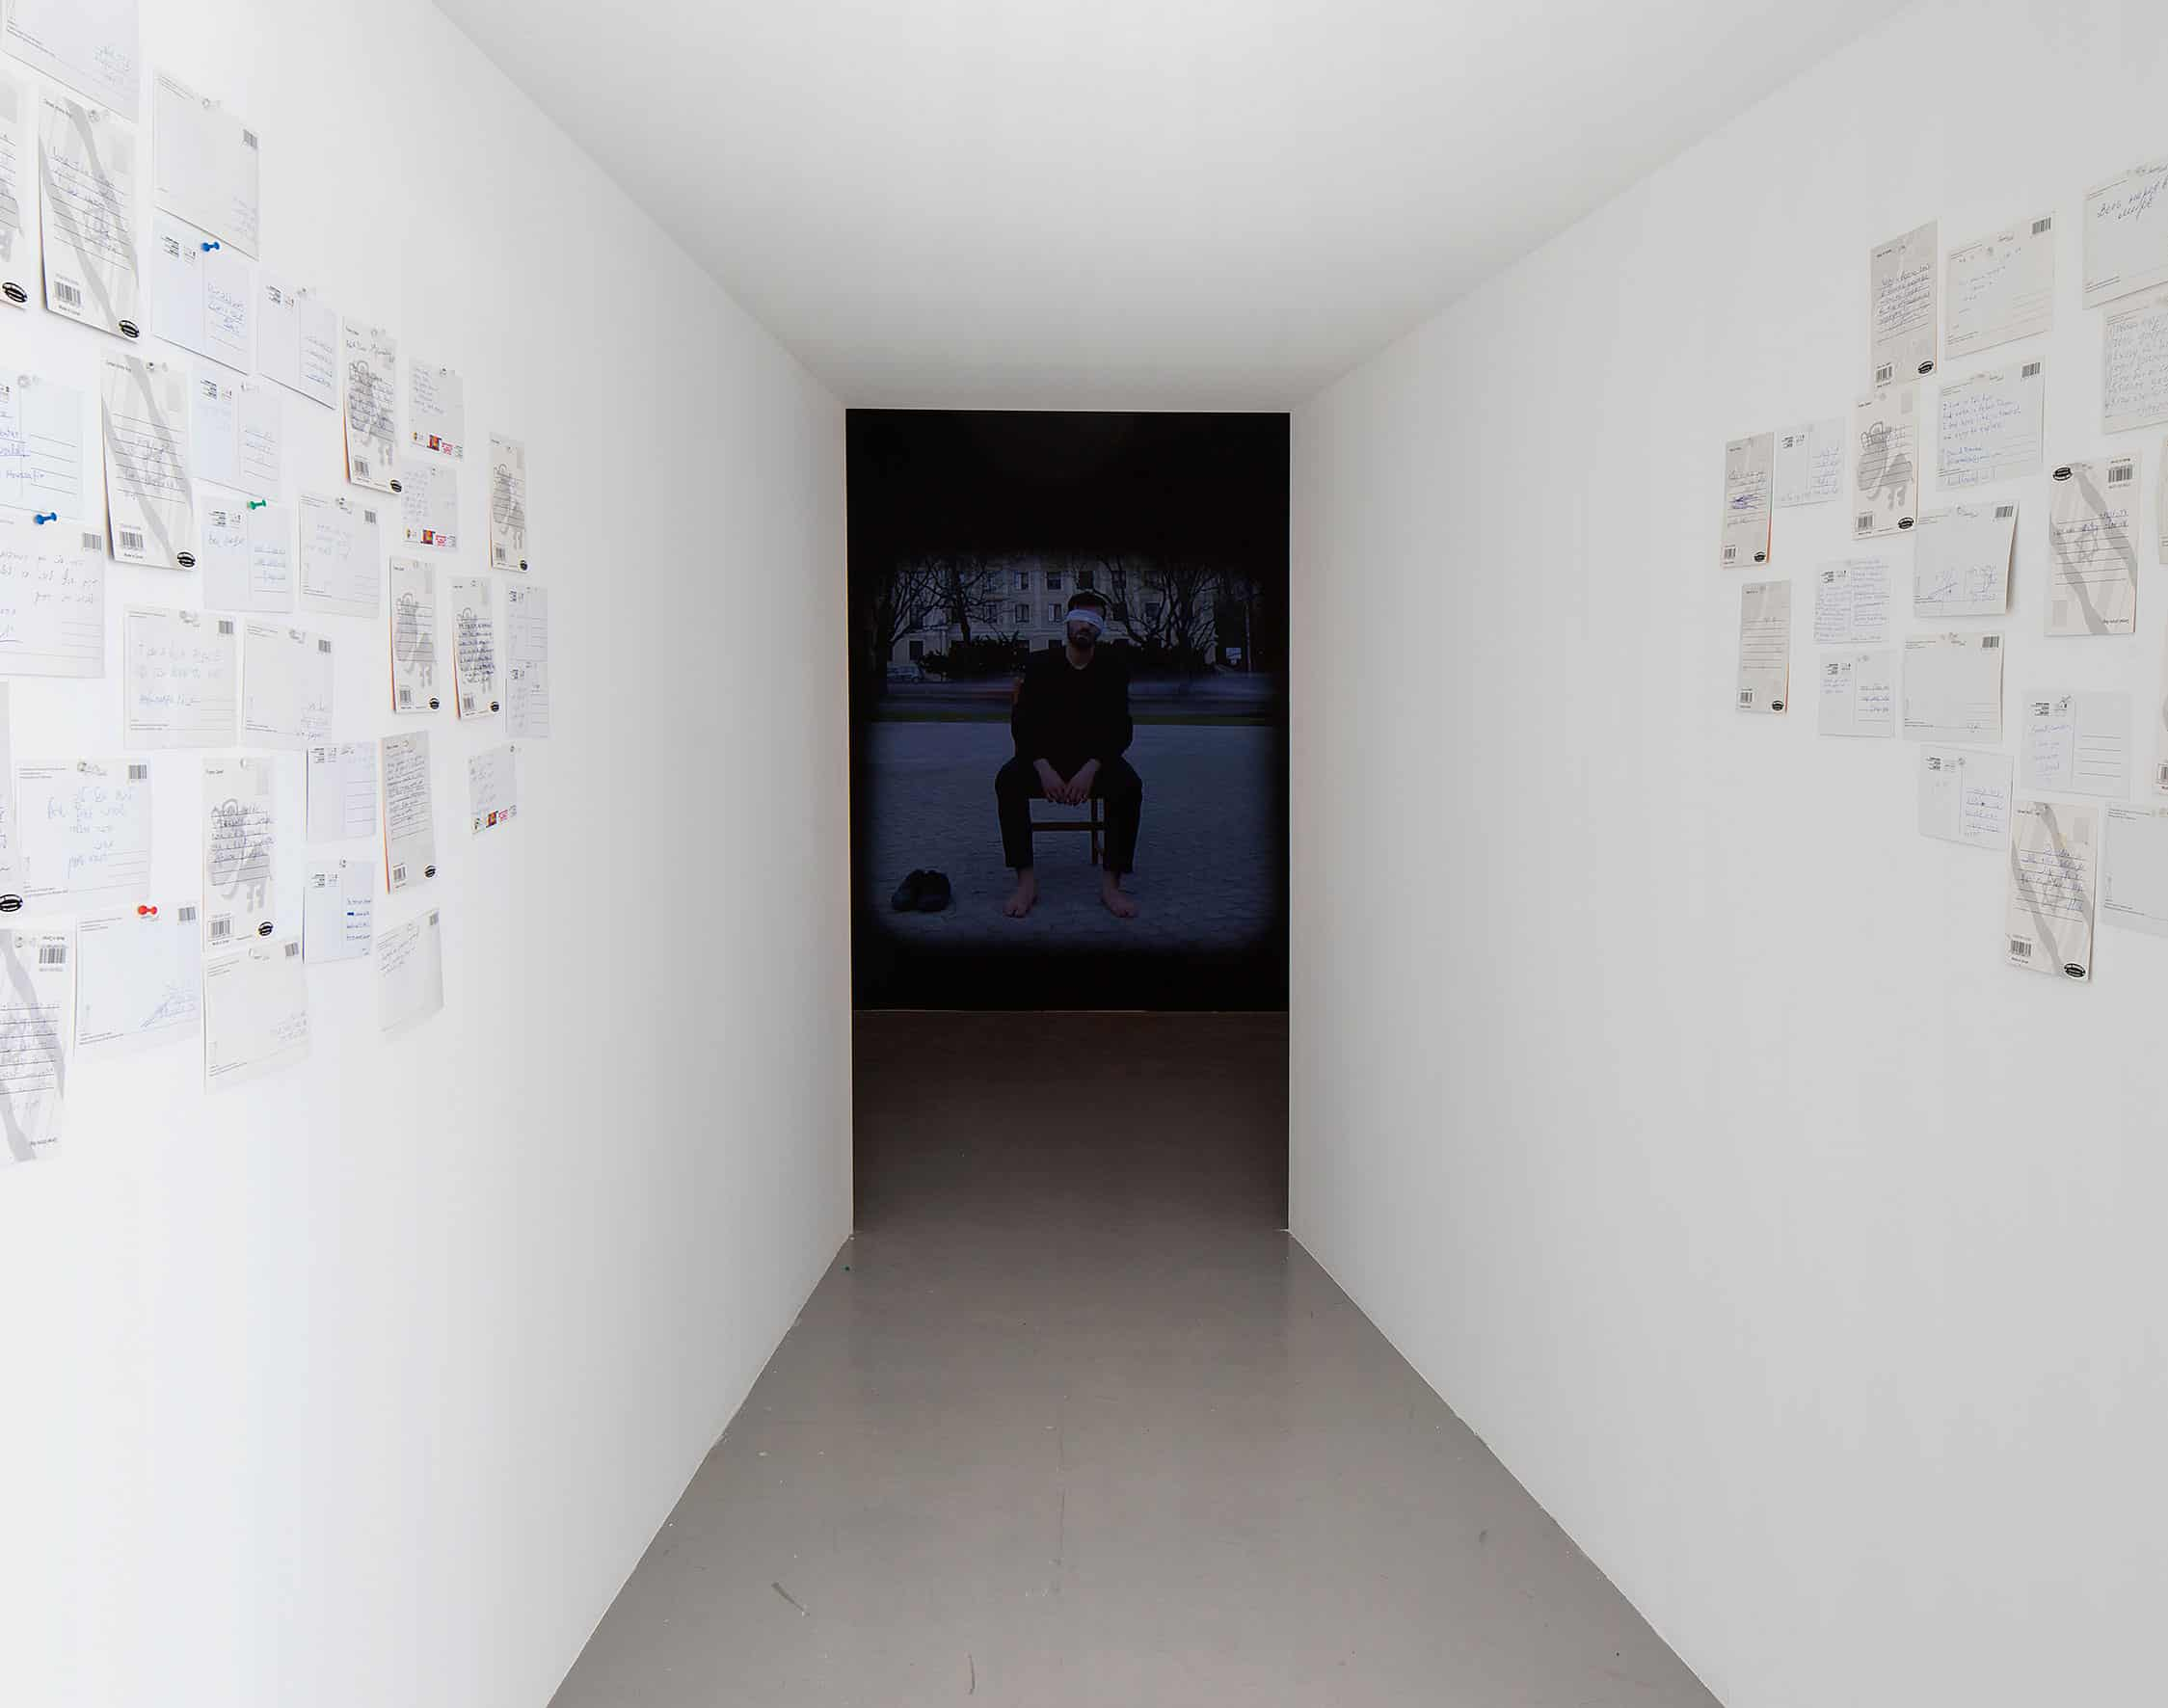 Entrance to the exhibition 'Operations on places' in Petach Tikva Museum of Art, photo: Elad Sarig, courtesy of the Petach Tikva Museum of Art